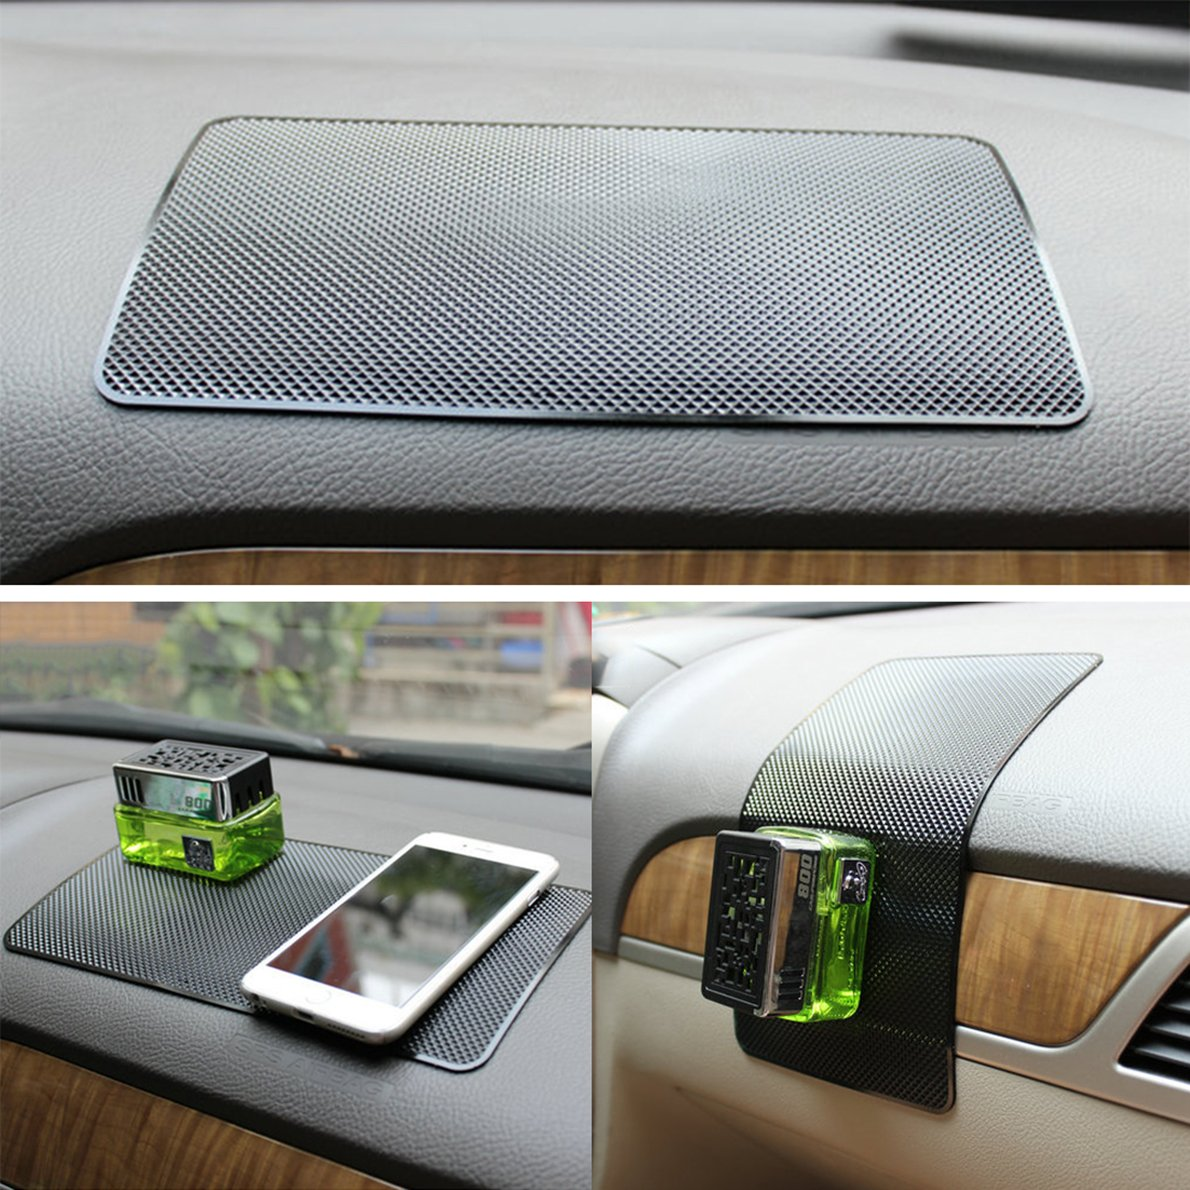 SHUYIT Anti-slip Car Dash Sticky Pad Keys 27 x 15 cm Non-slip Mat Silicone Car Dashboard Sticky Pad Anti Slip Mat Adhesive Pad for Mobile Phones Electronic Devices Glasses